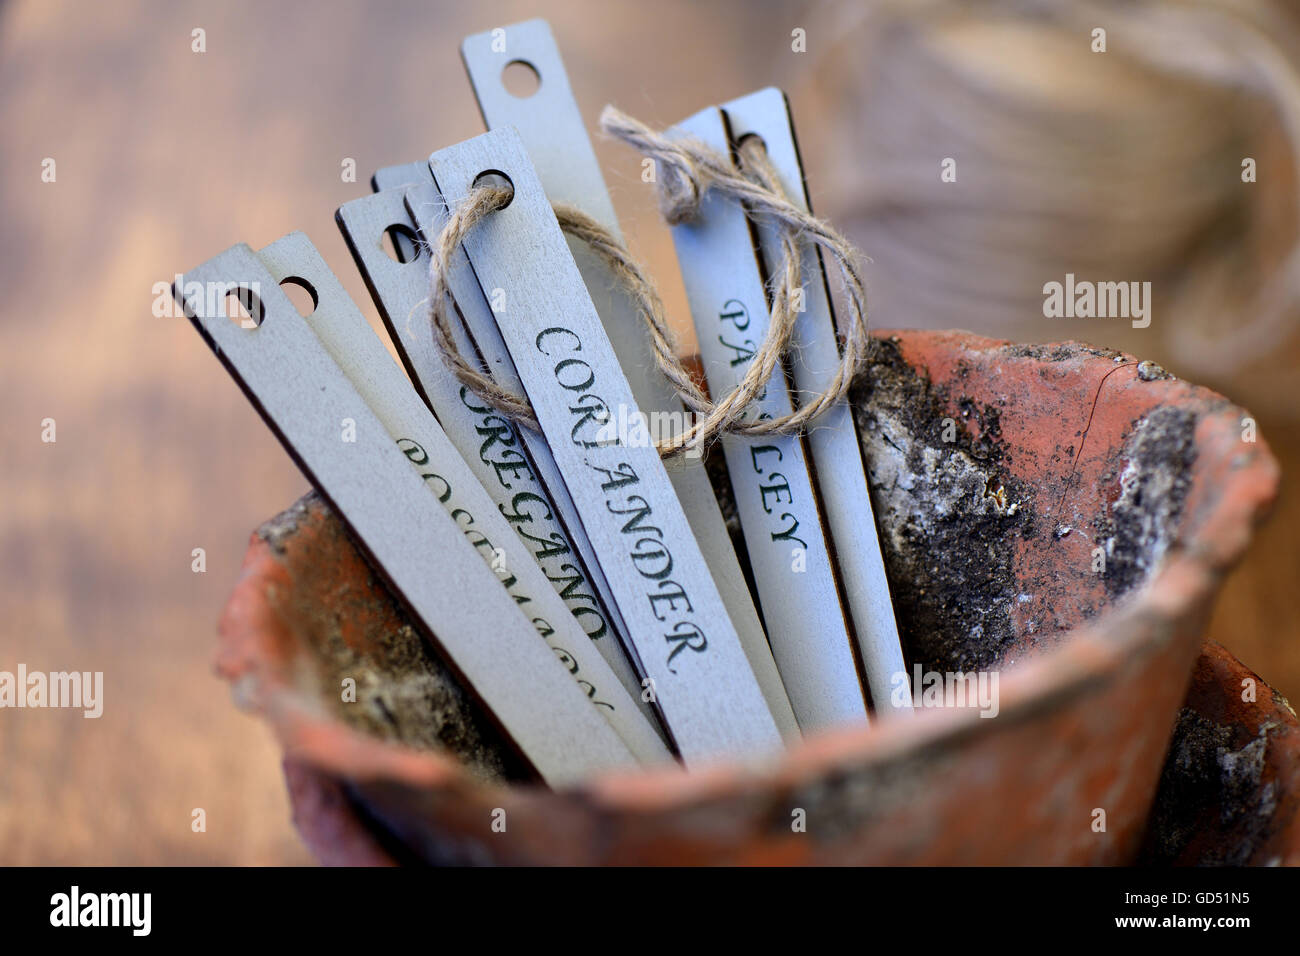 Name plates for herbs - Stock Image